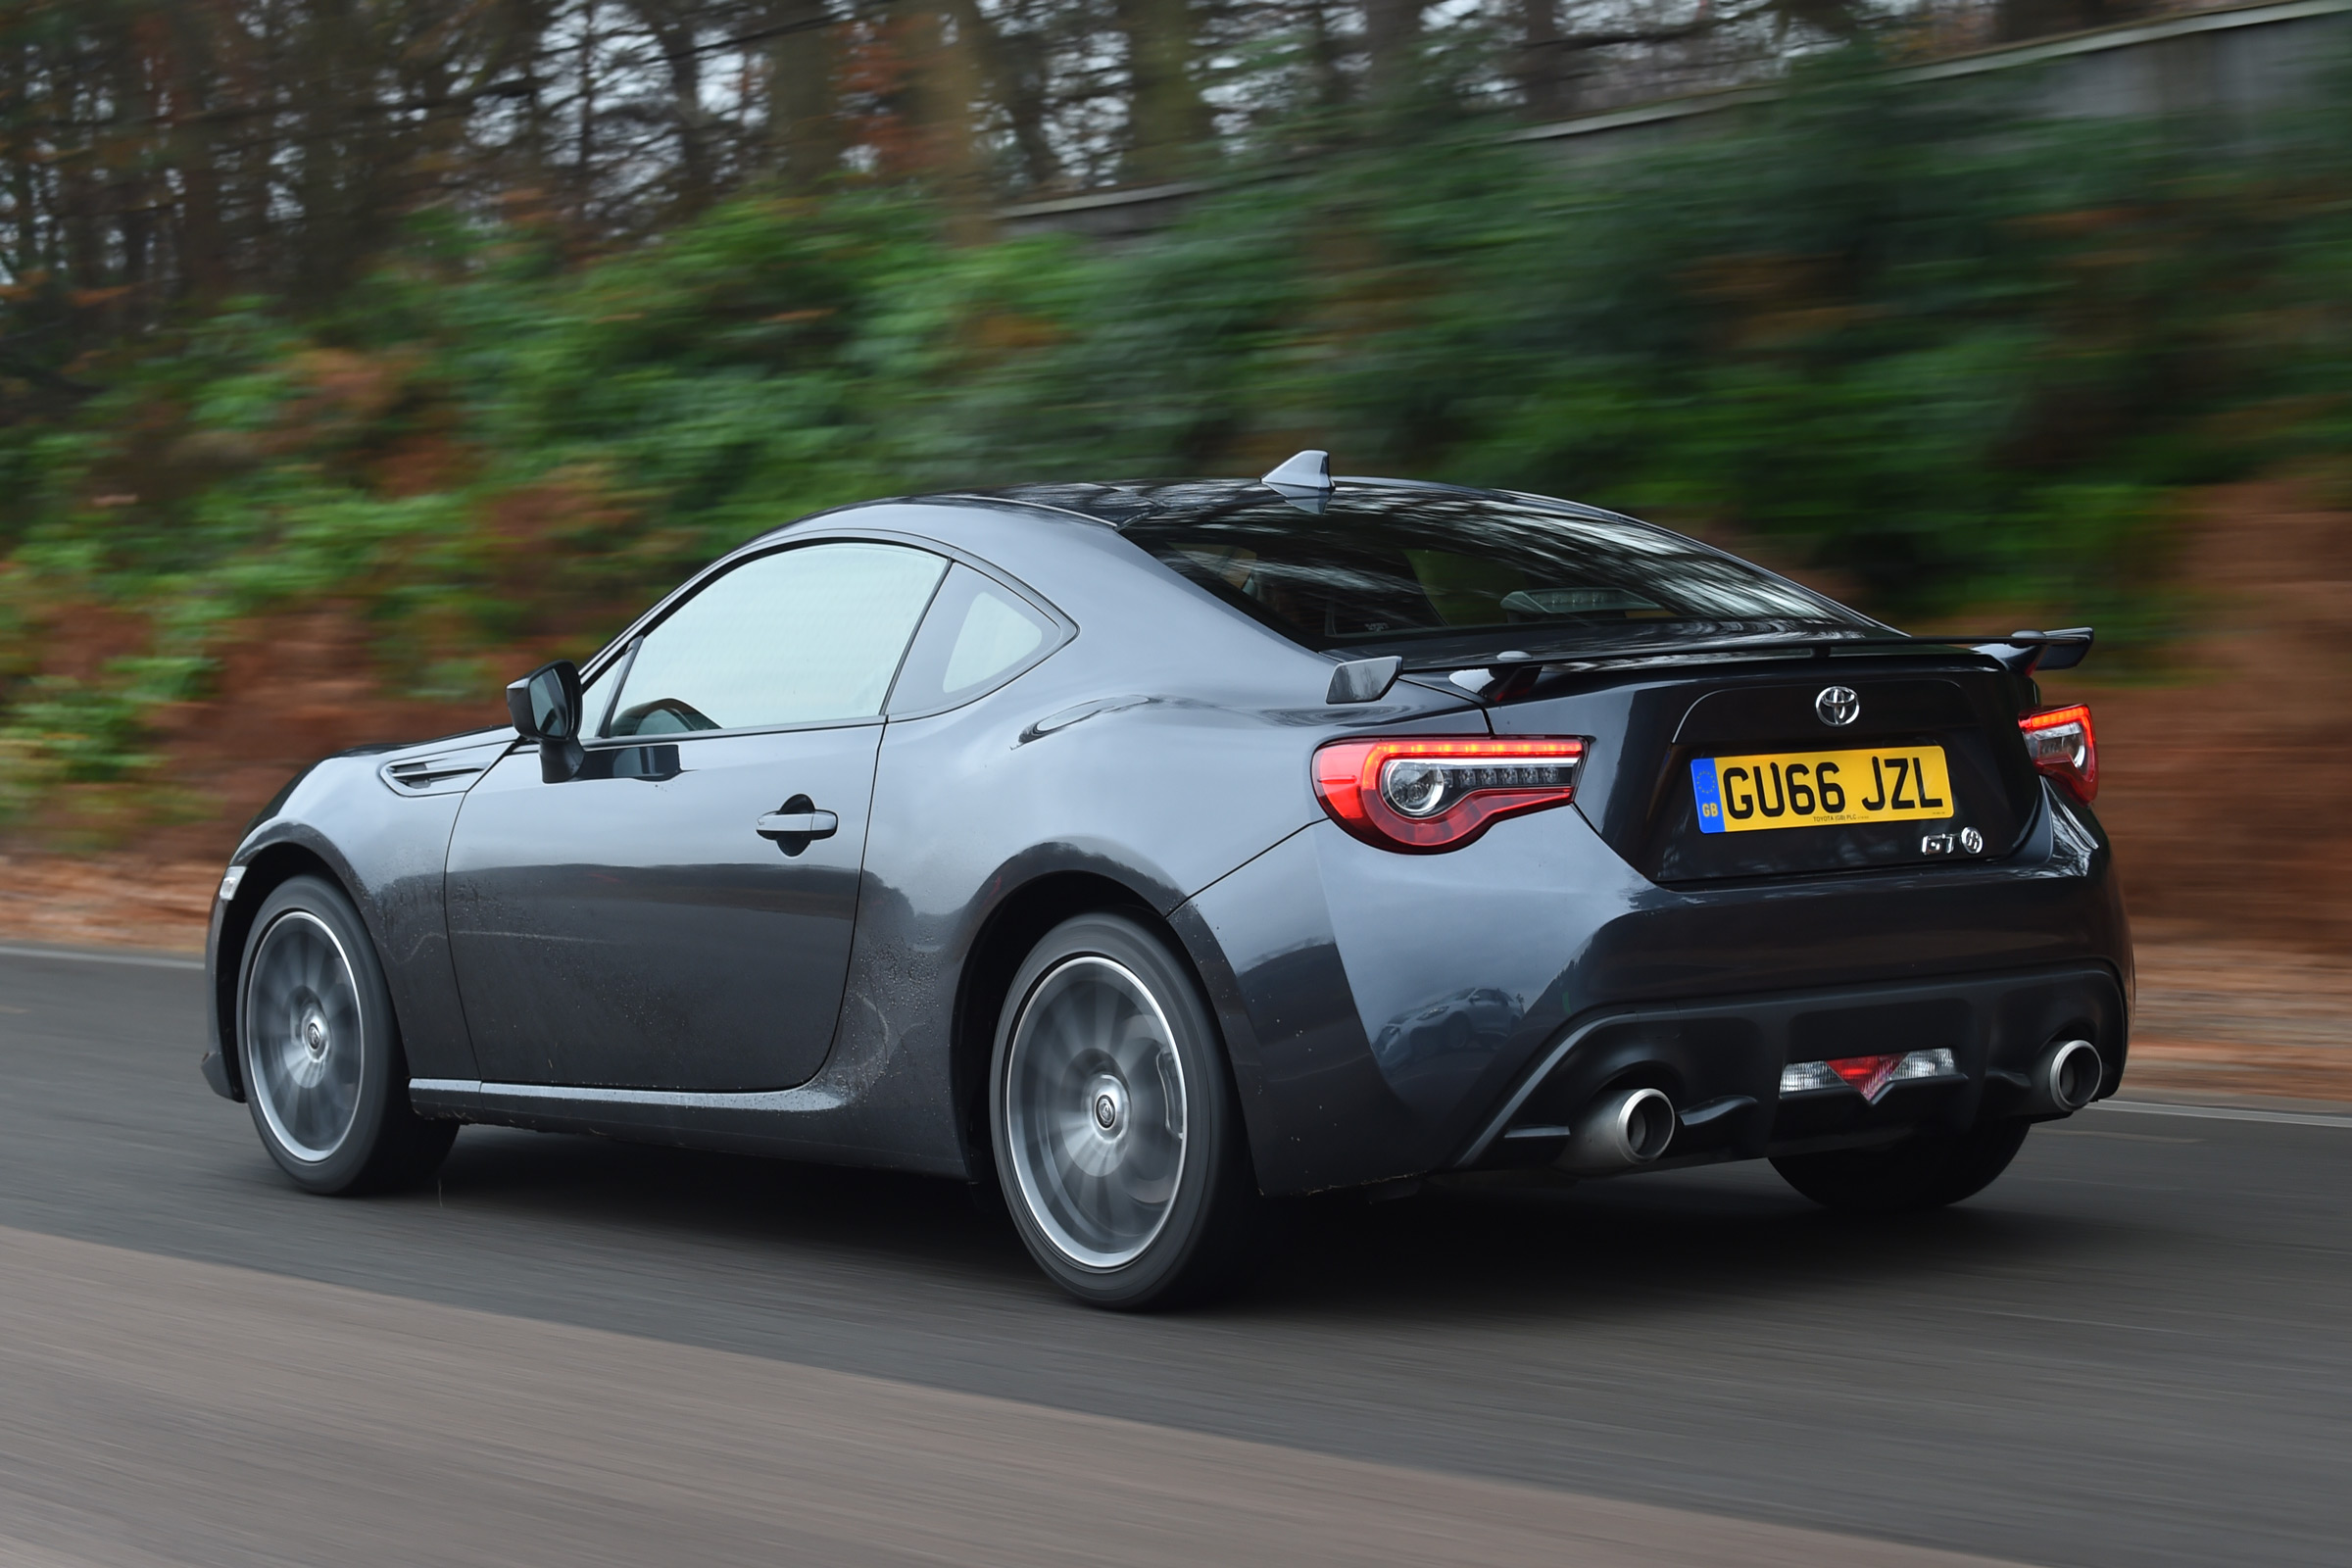 2017 Toyota GT86 Black Test Drive Rear And Side View (View 7 of 13)